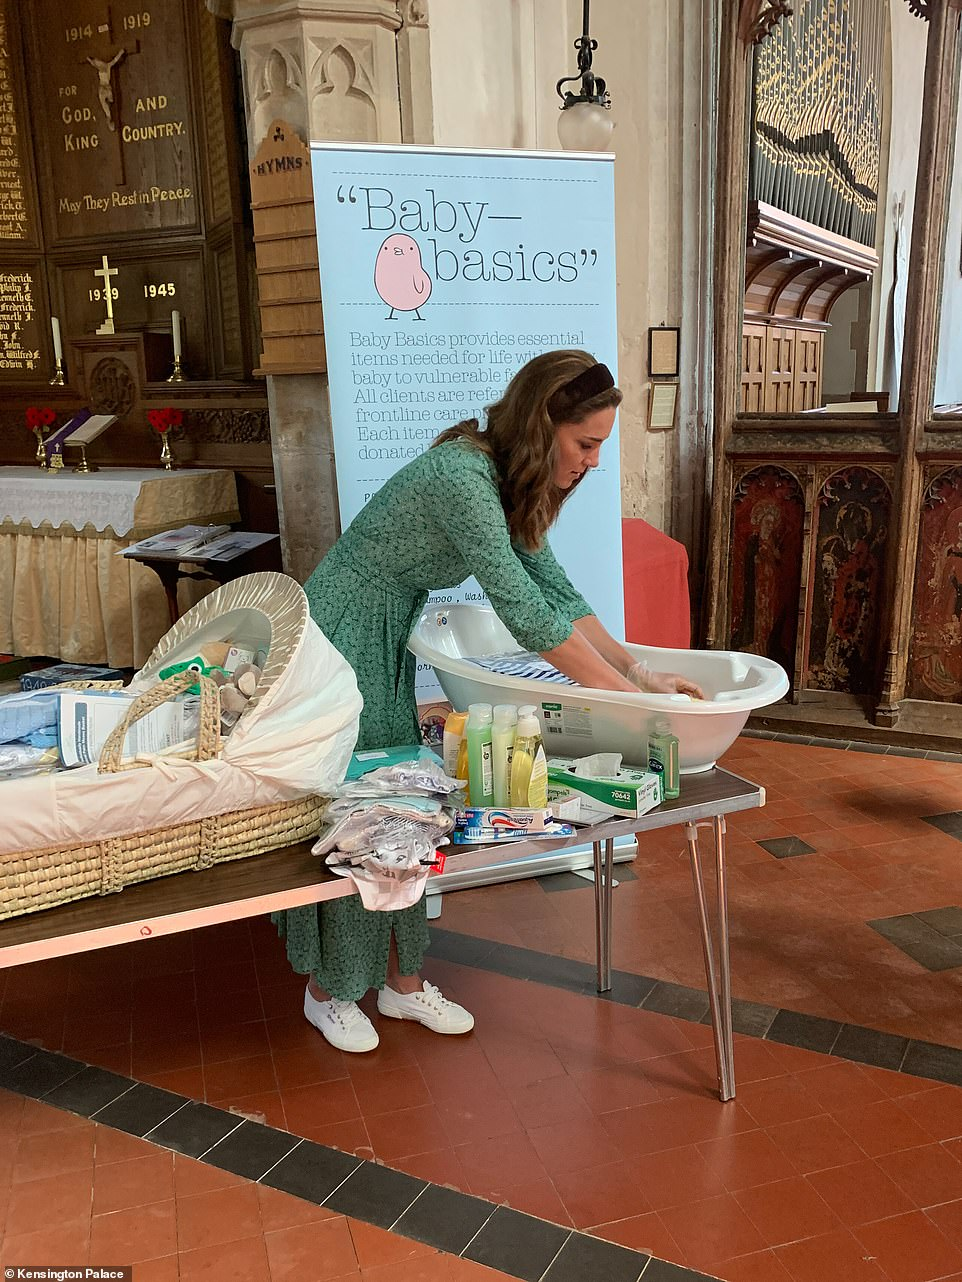 The Duchess of Cambridge has brought together nineteen British brands and retailers to donate over 10,000 new items to more than 40 baby banks nationwide.